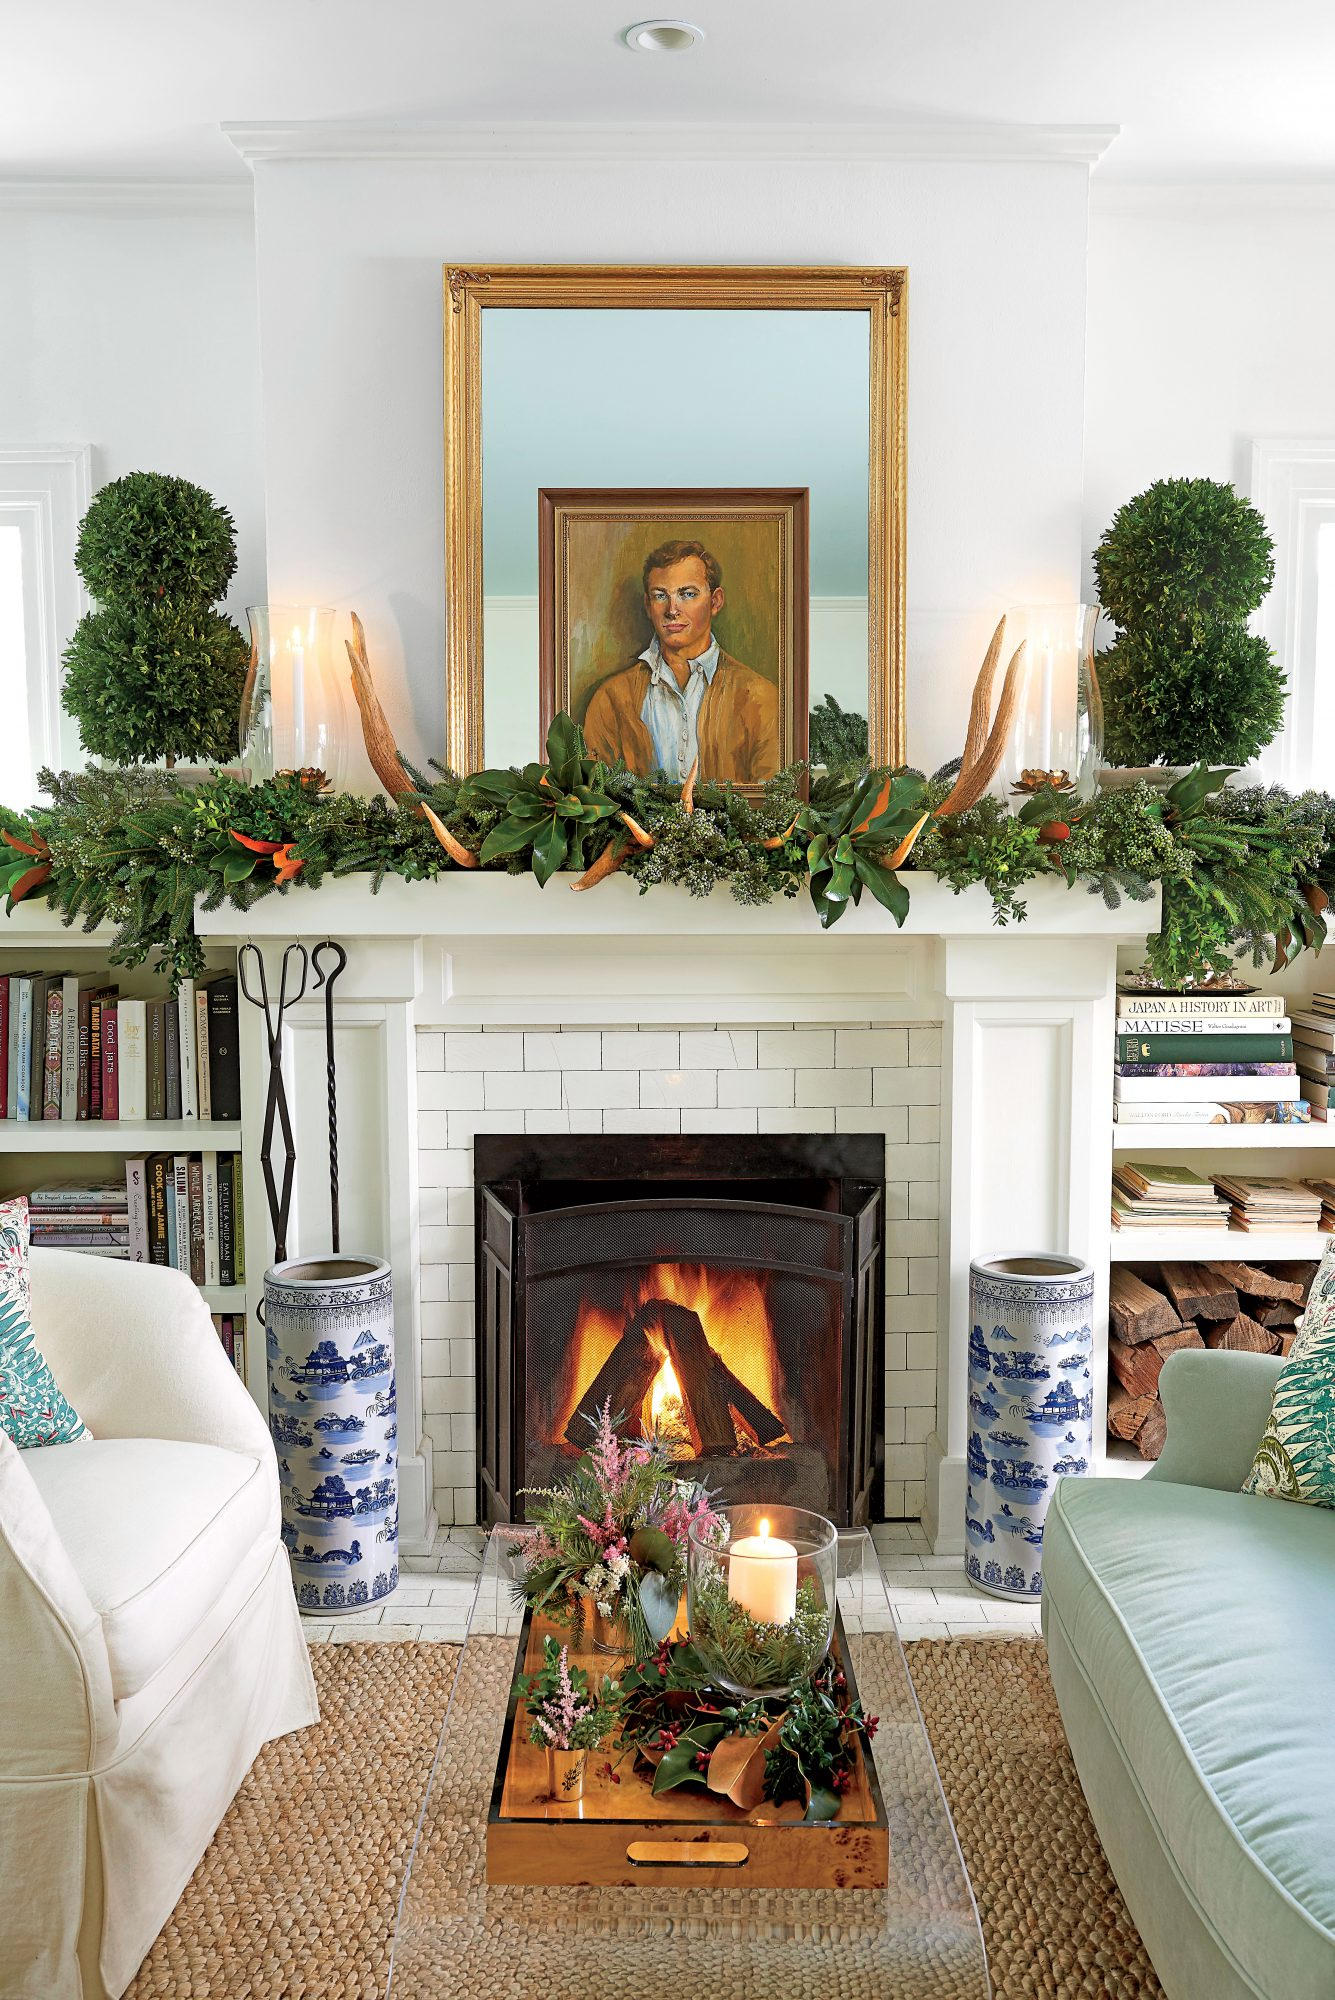 Hillenmeyer Living Room with Fireplace Decorated for Christmas